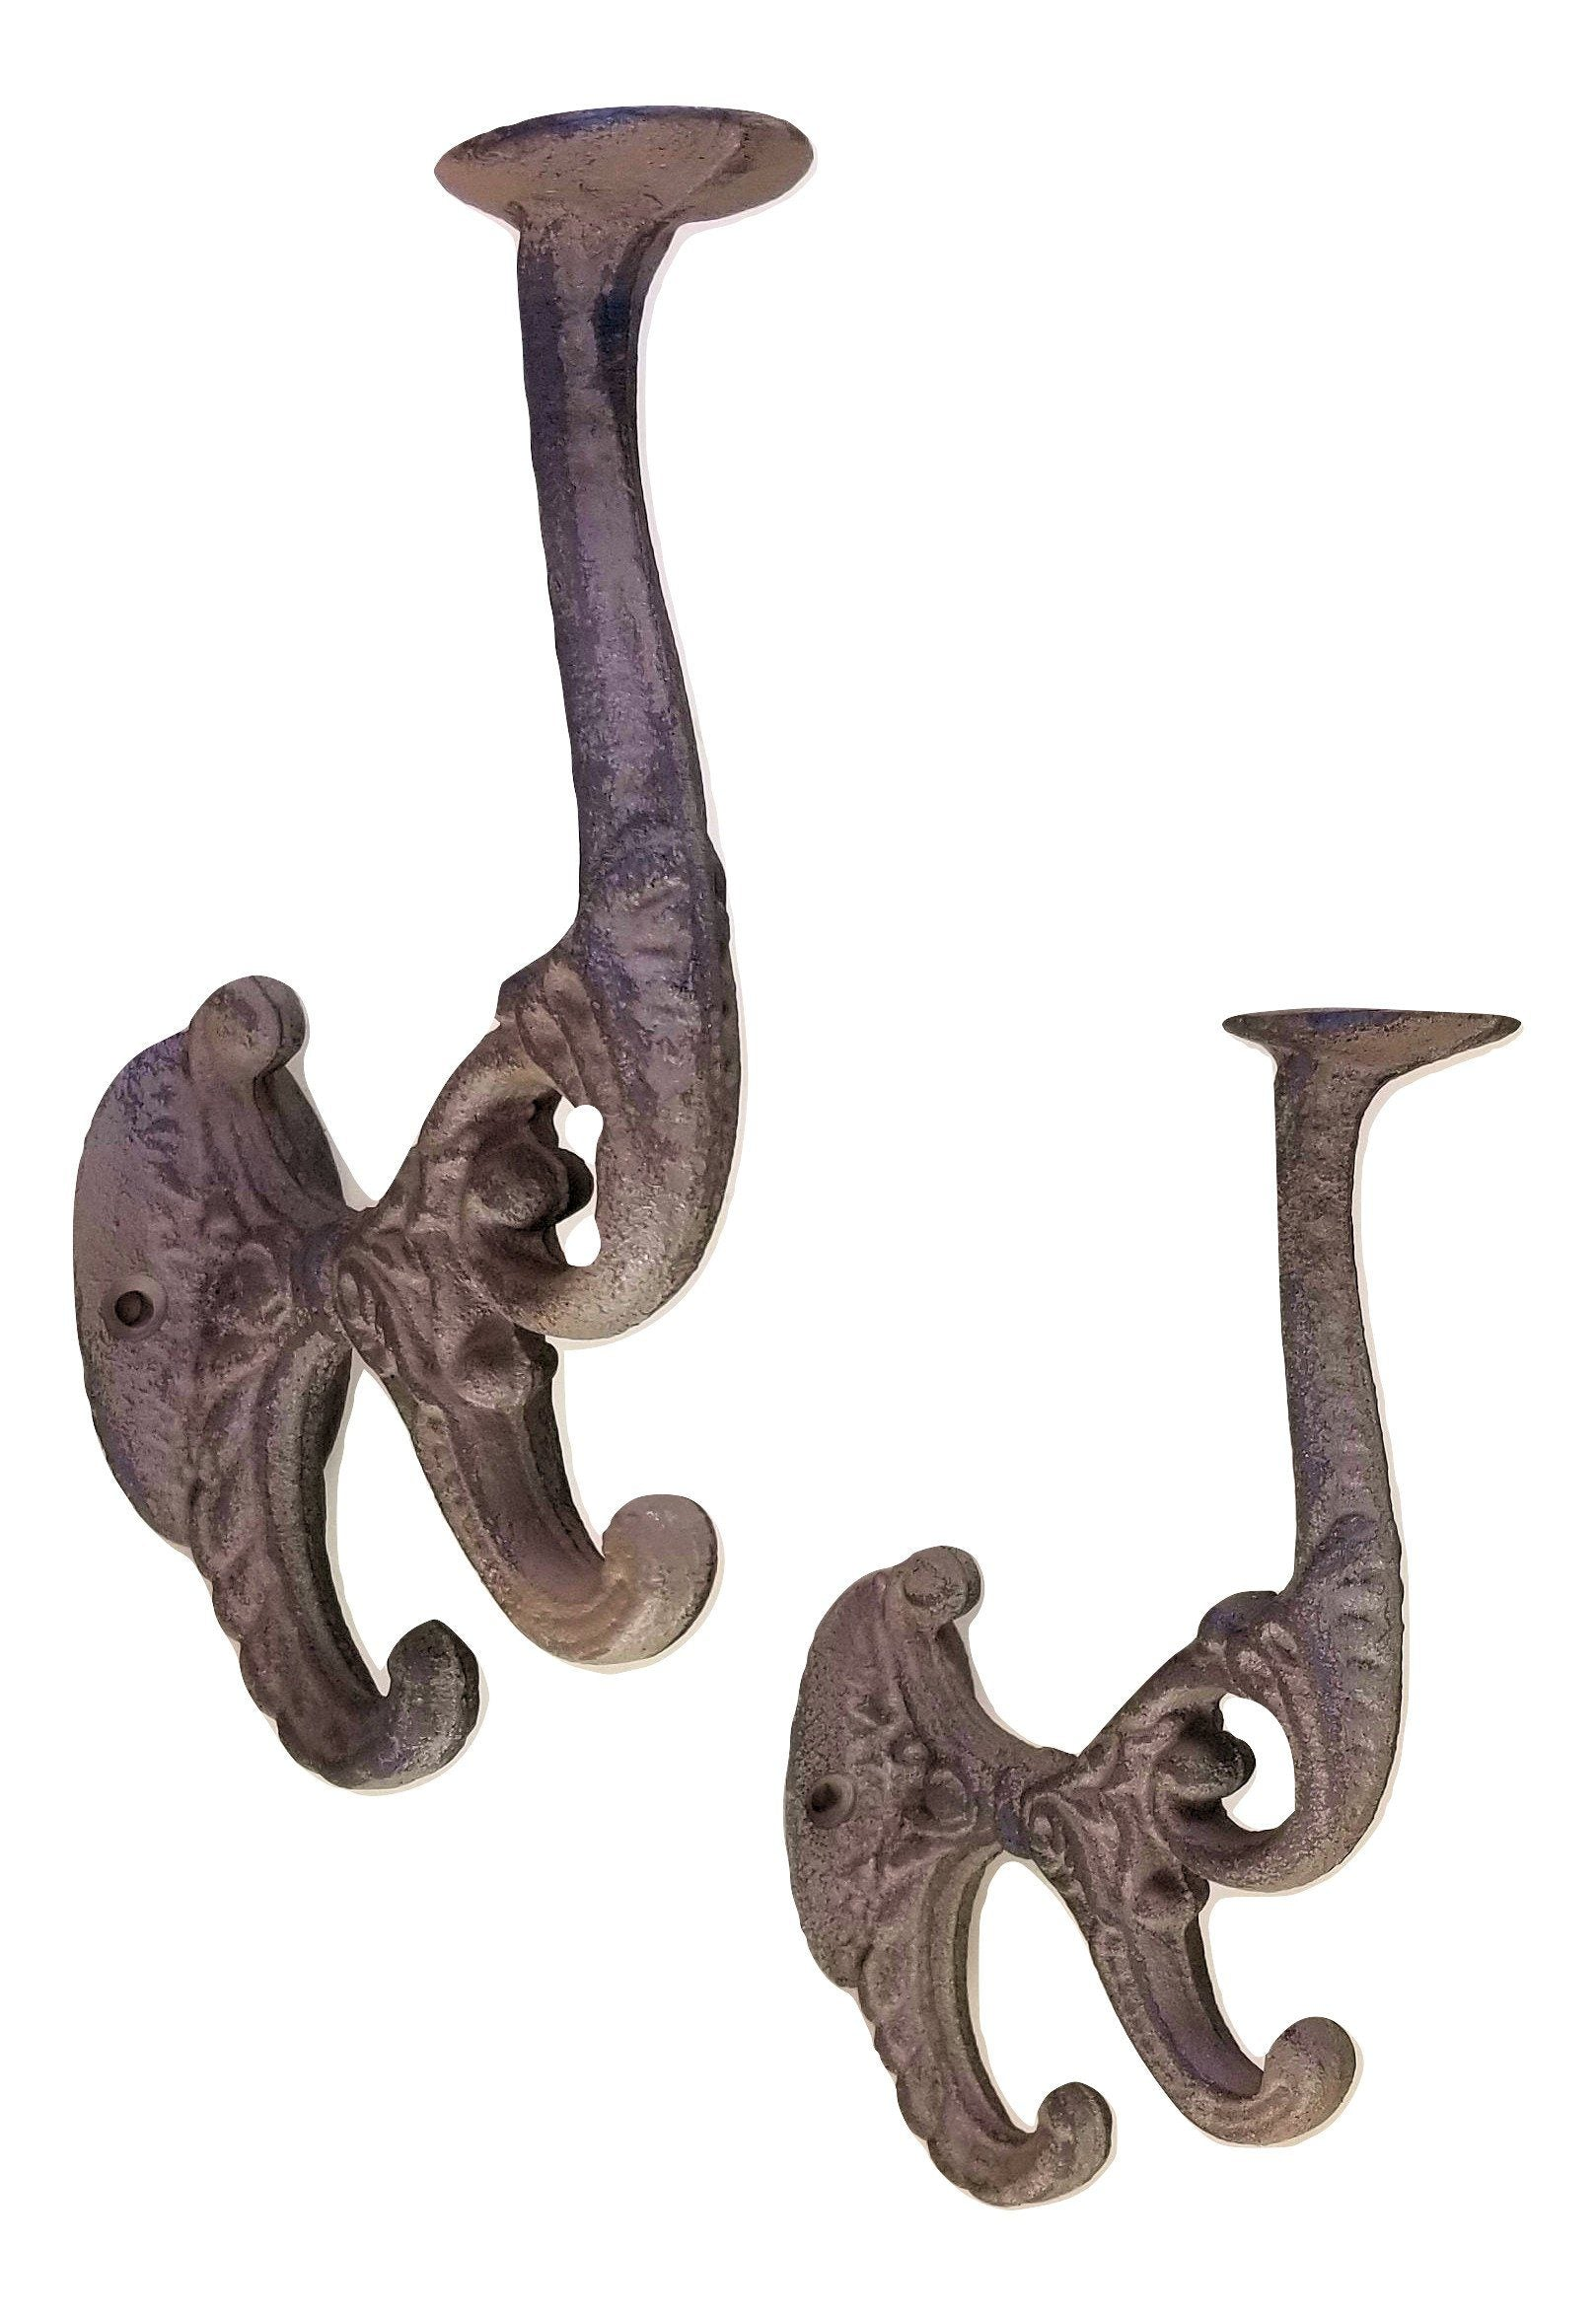 2 Cast Iron Double Hooks wall mount vintage style Wall Hooks & Hangers Carvers Olde Iron